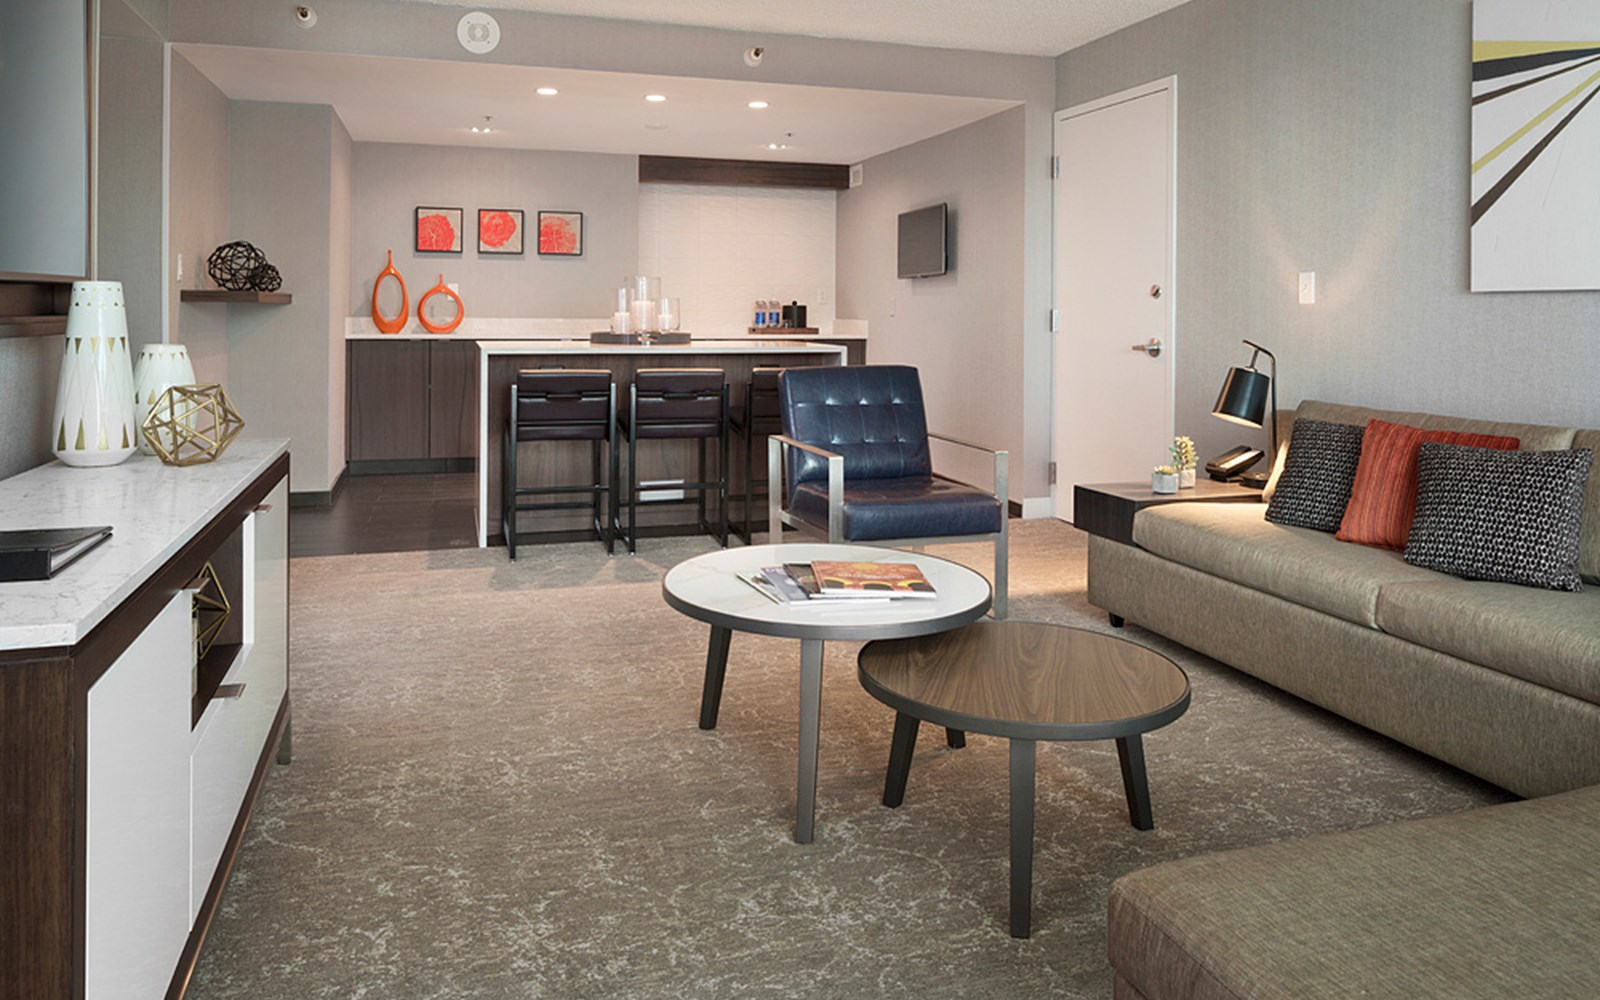 Living and dining areas of a guest room